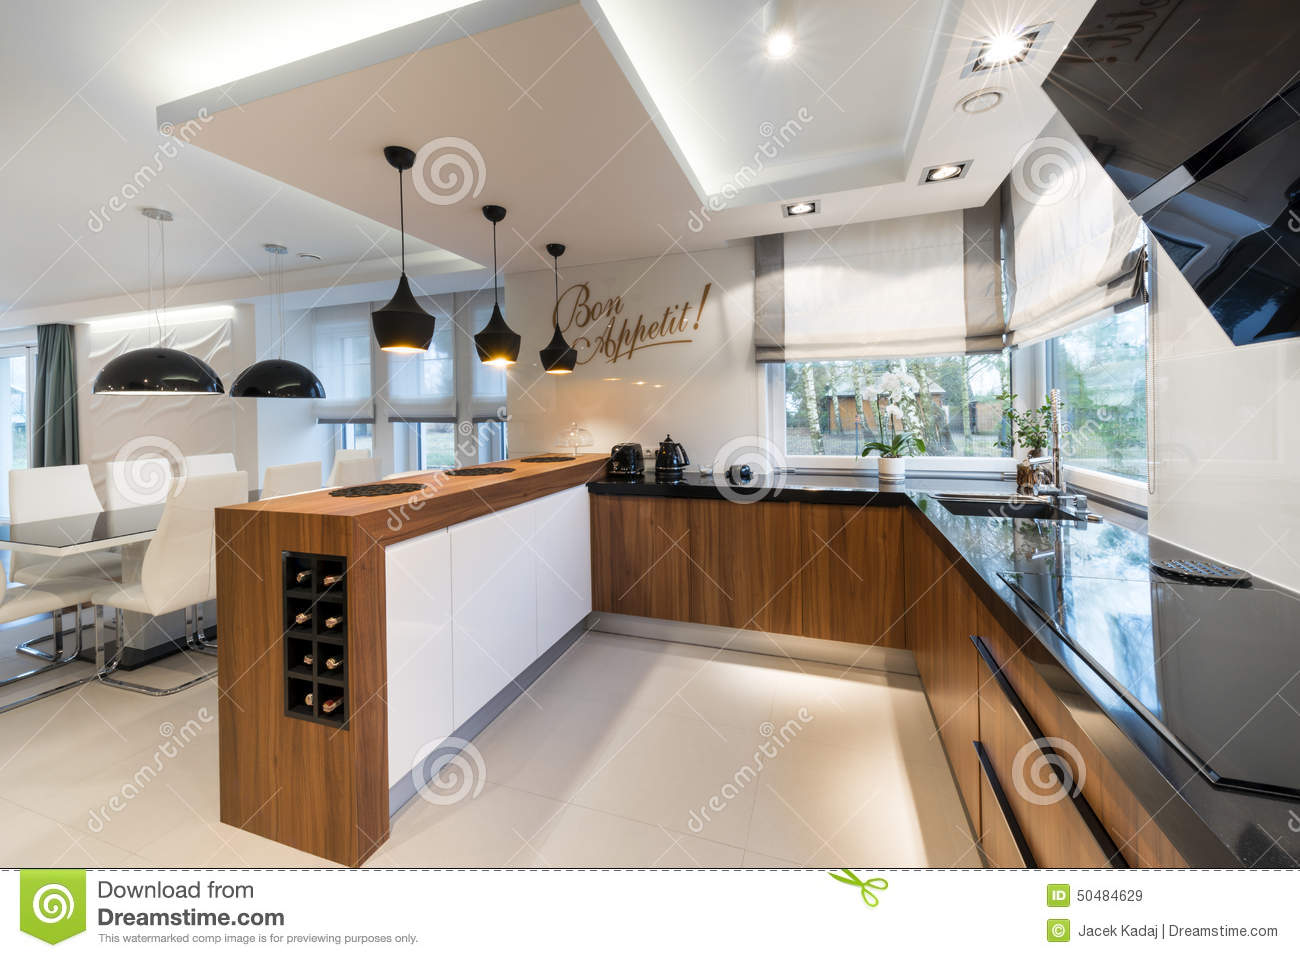 Modern kitchen interior design stock image image of furniture mansion 50484629 - Kitchen interior designing ...